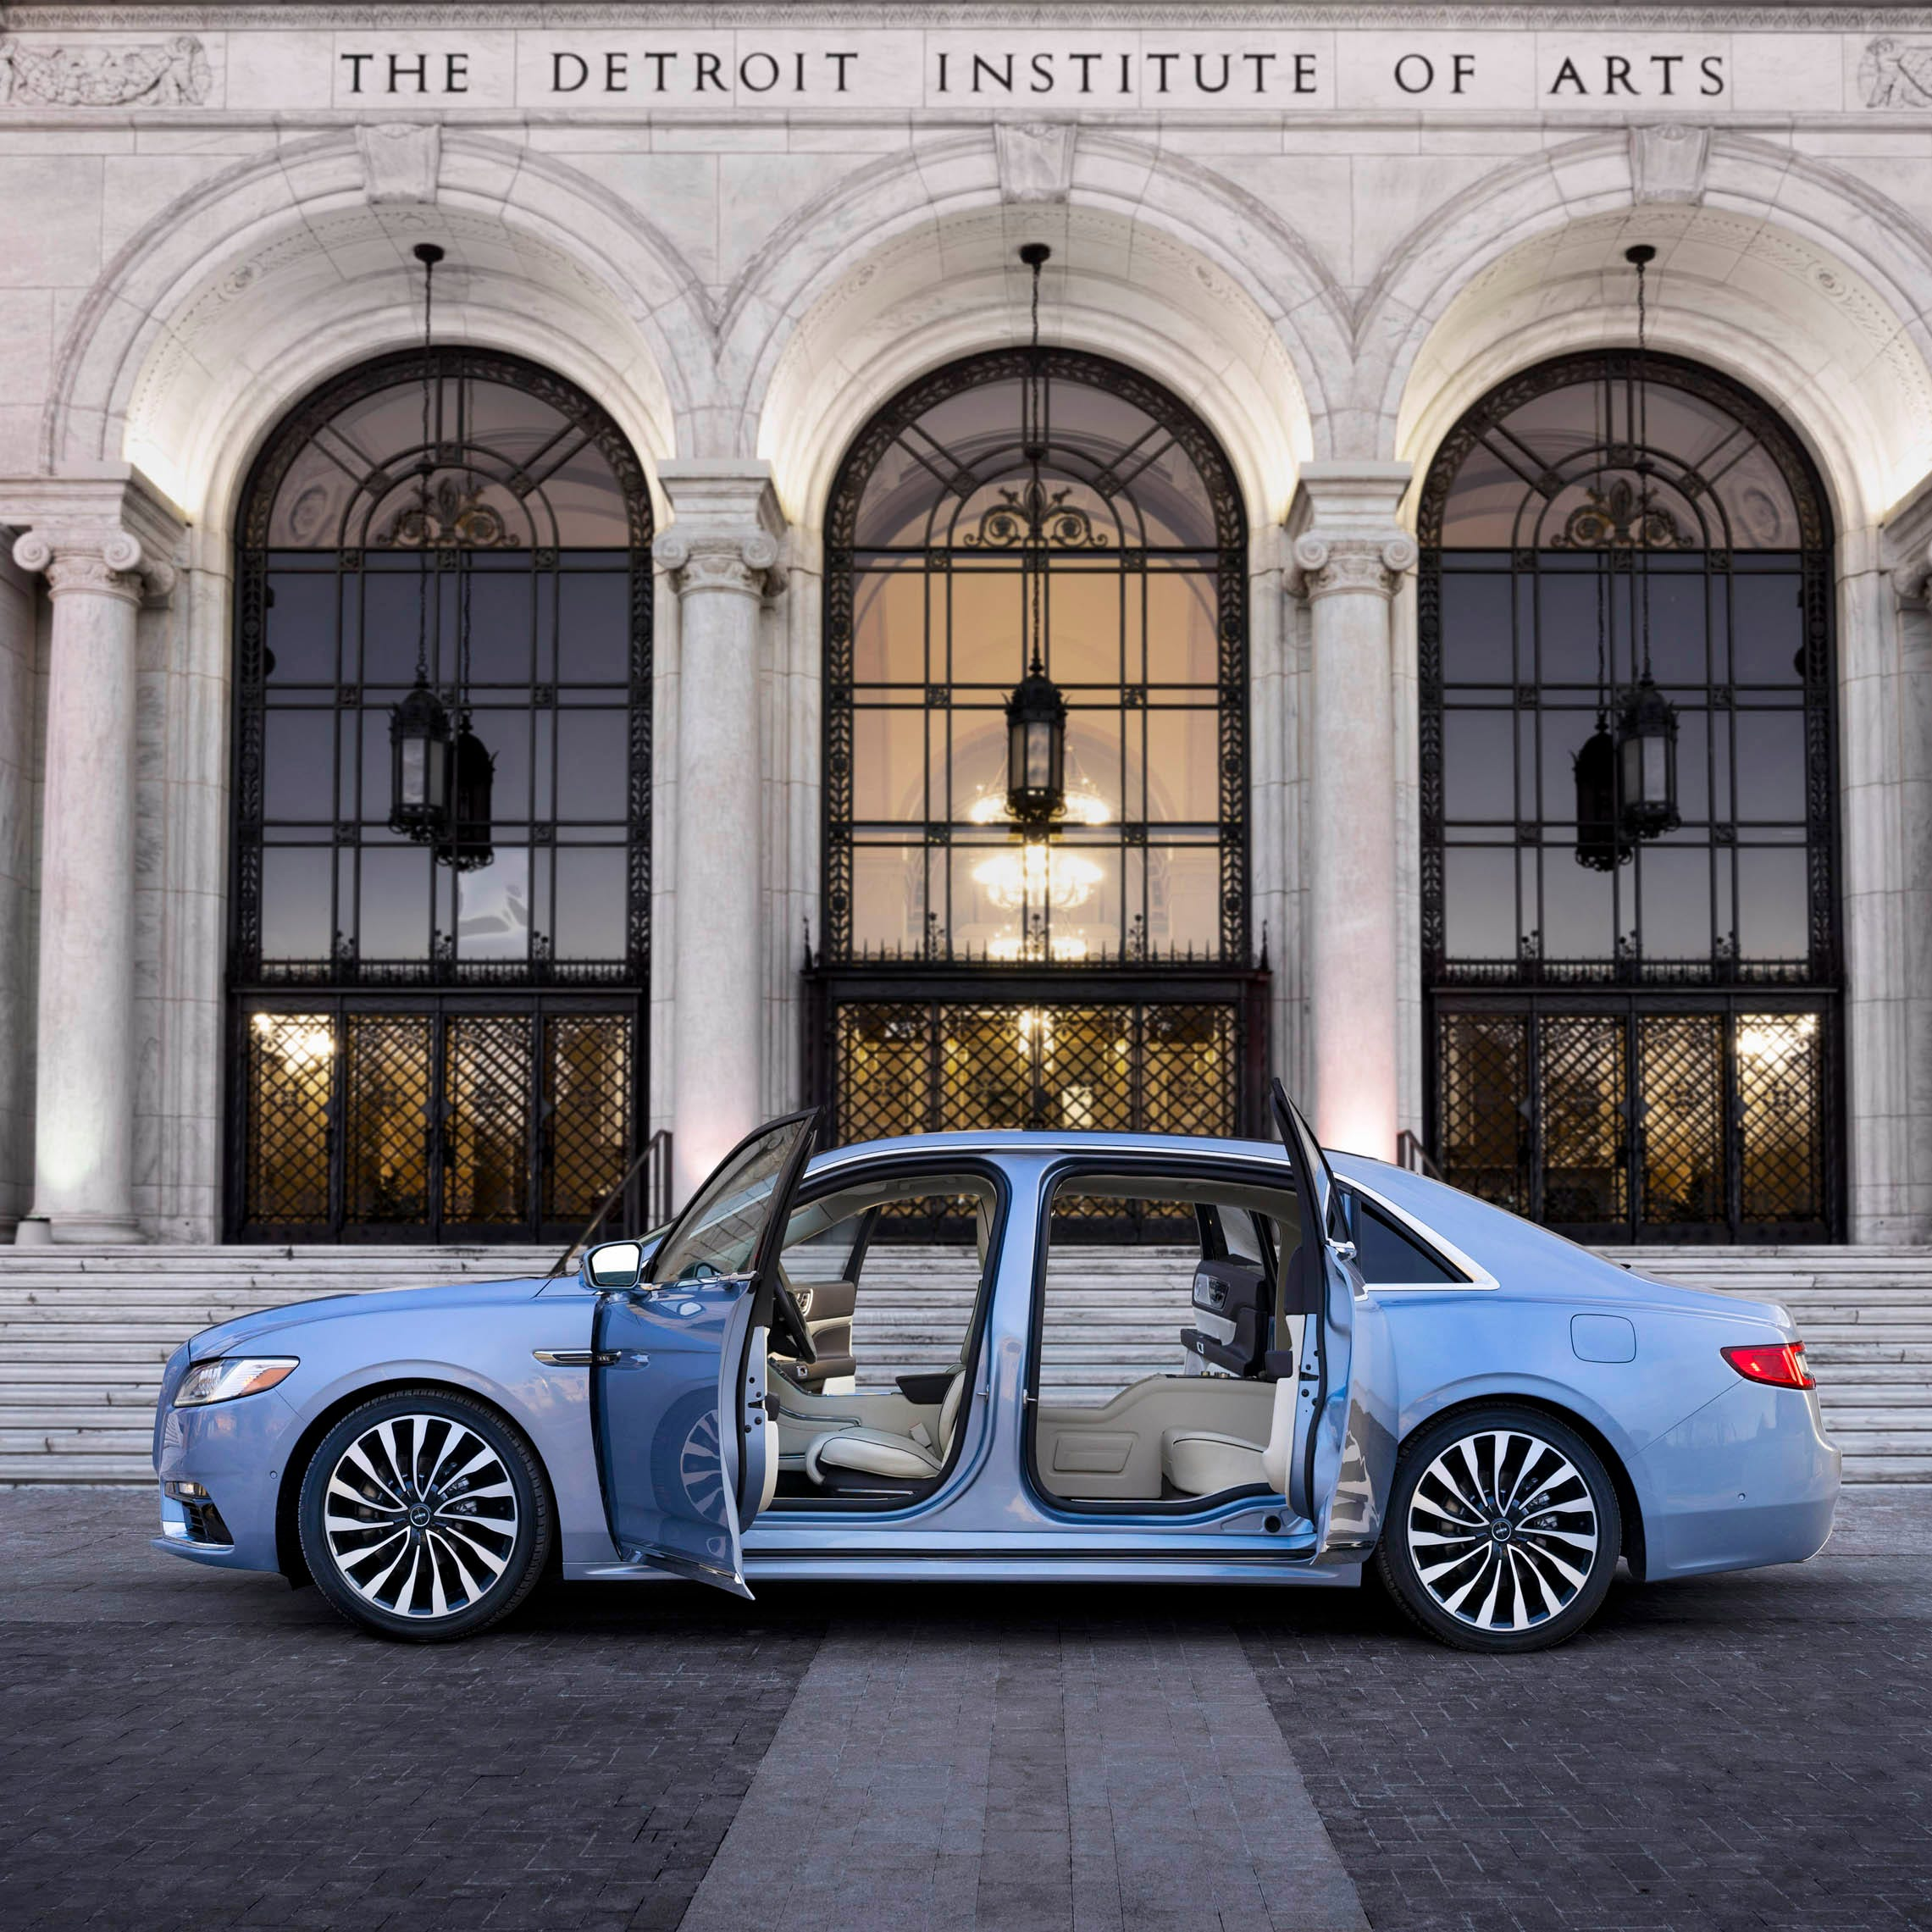 Lincoln Continental: A limited-edition design of 80 new cars for $100,000 each